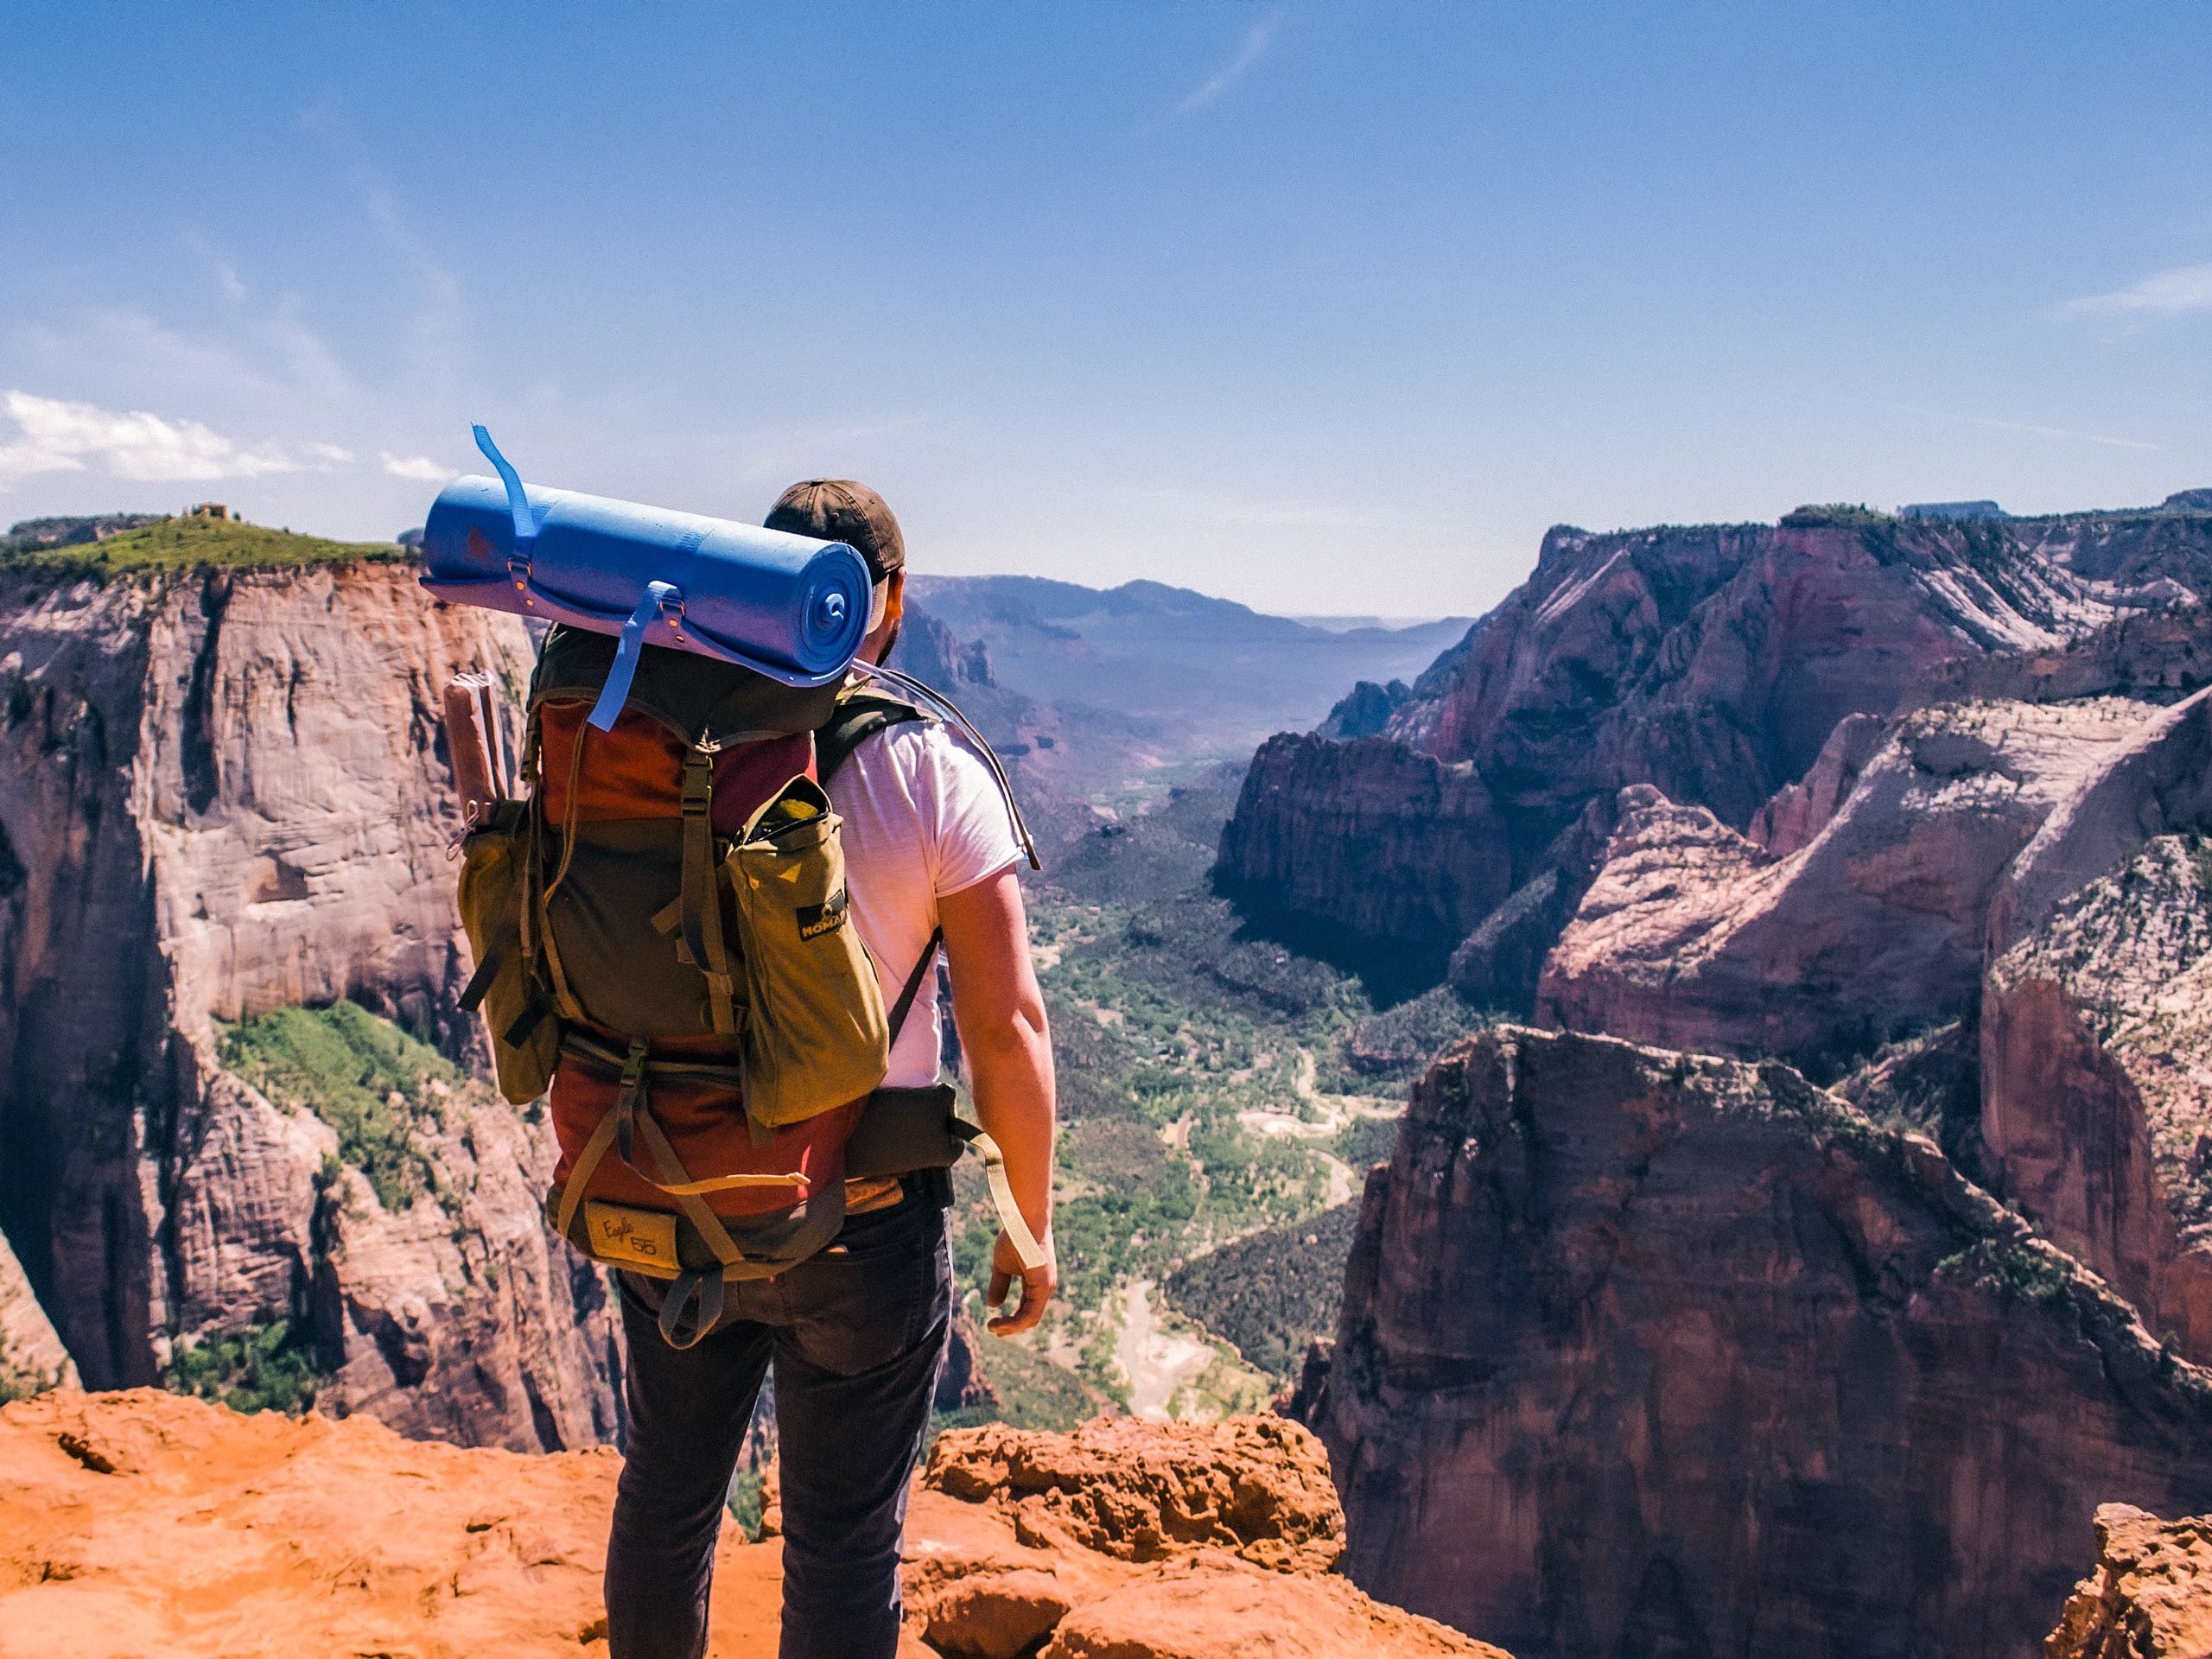 Man with backpack and camping gear standing above canyon